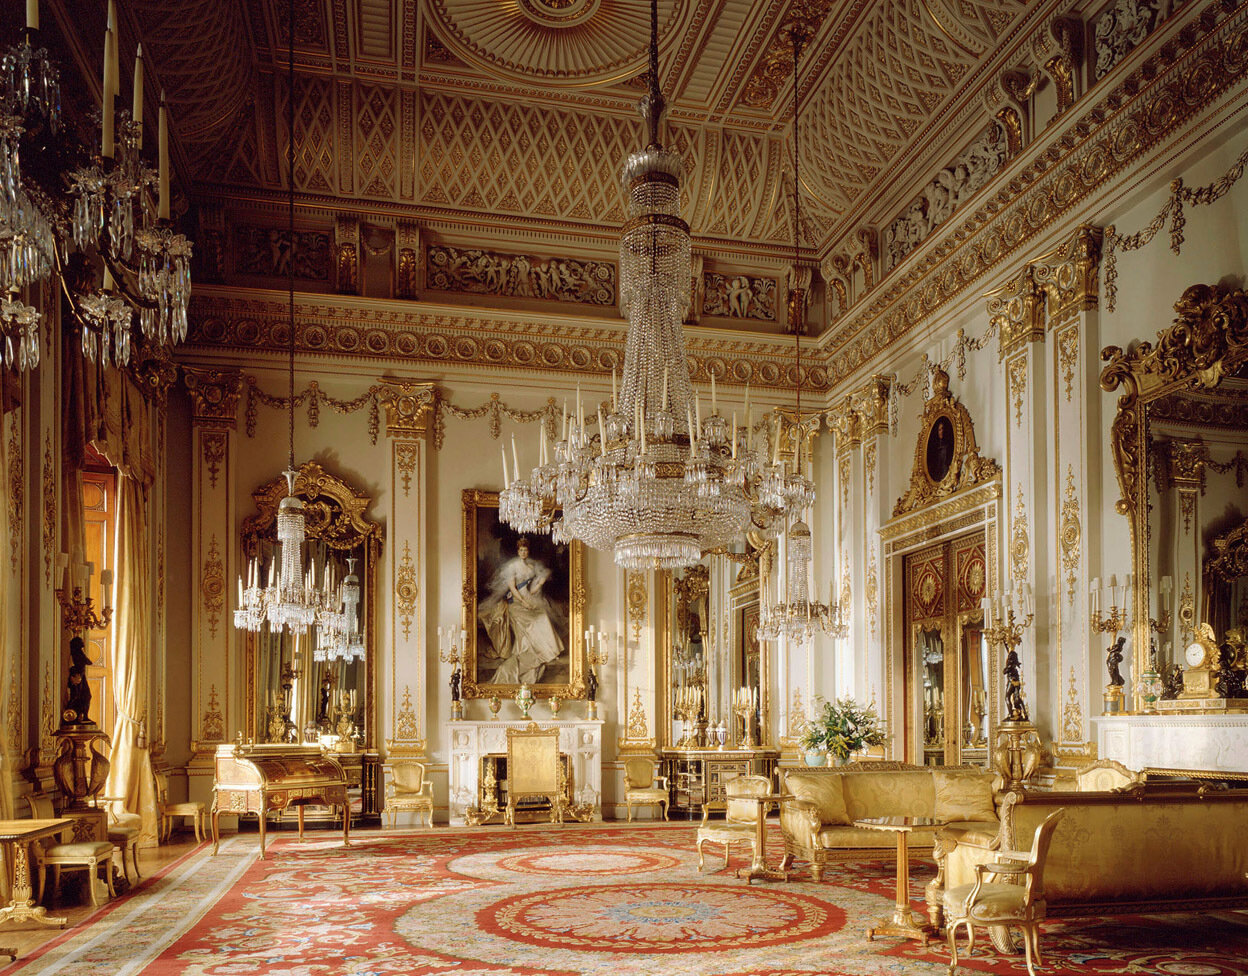 White Drawing Room<br/>The State Rooms, Buckingham Palace <br/><br/>Credit line:The Royal Collection (c) 2009, Her Majesty Queen Elizabeth II <br/>Photographer: Derry Moore<br/><br/>This photograph is issued